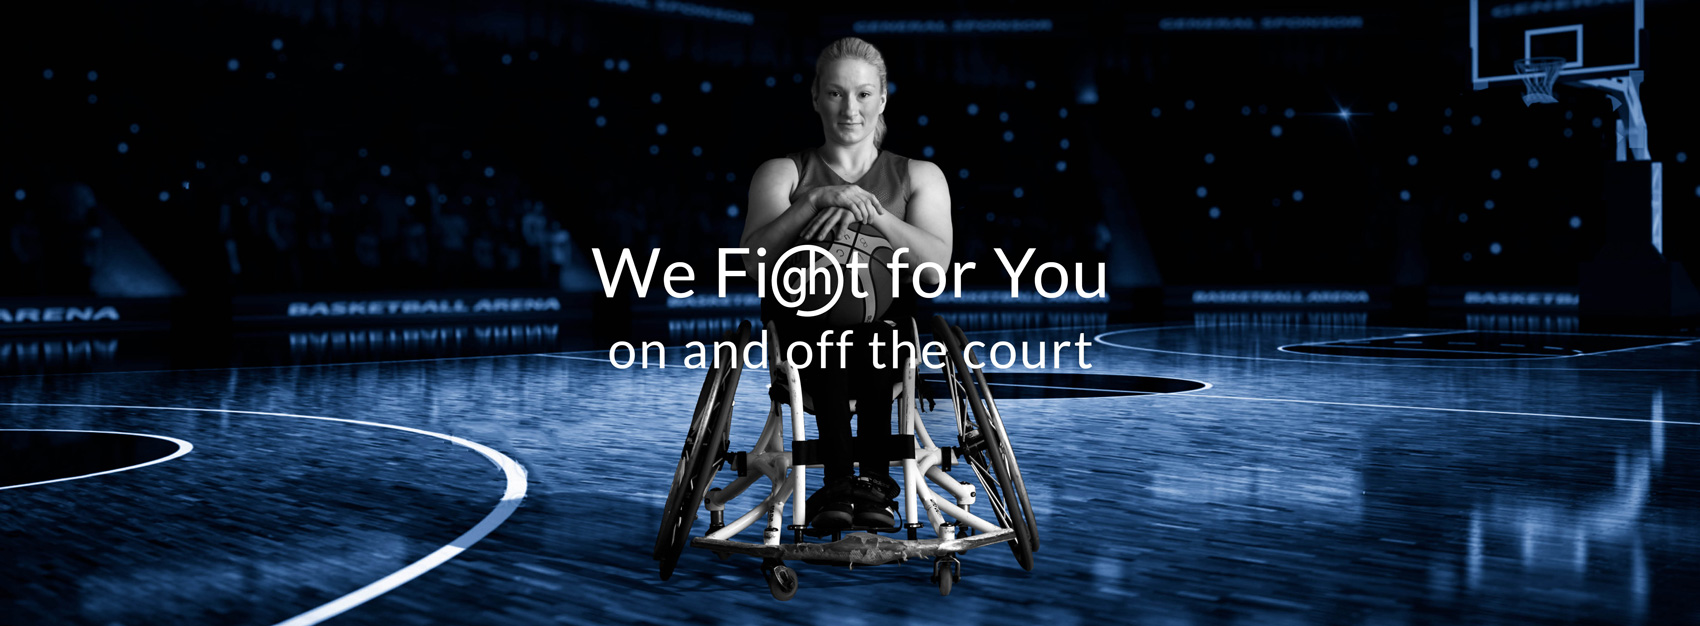 we fight for you on and off the court